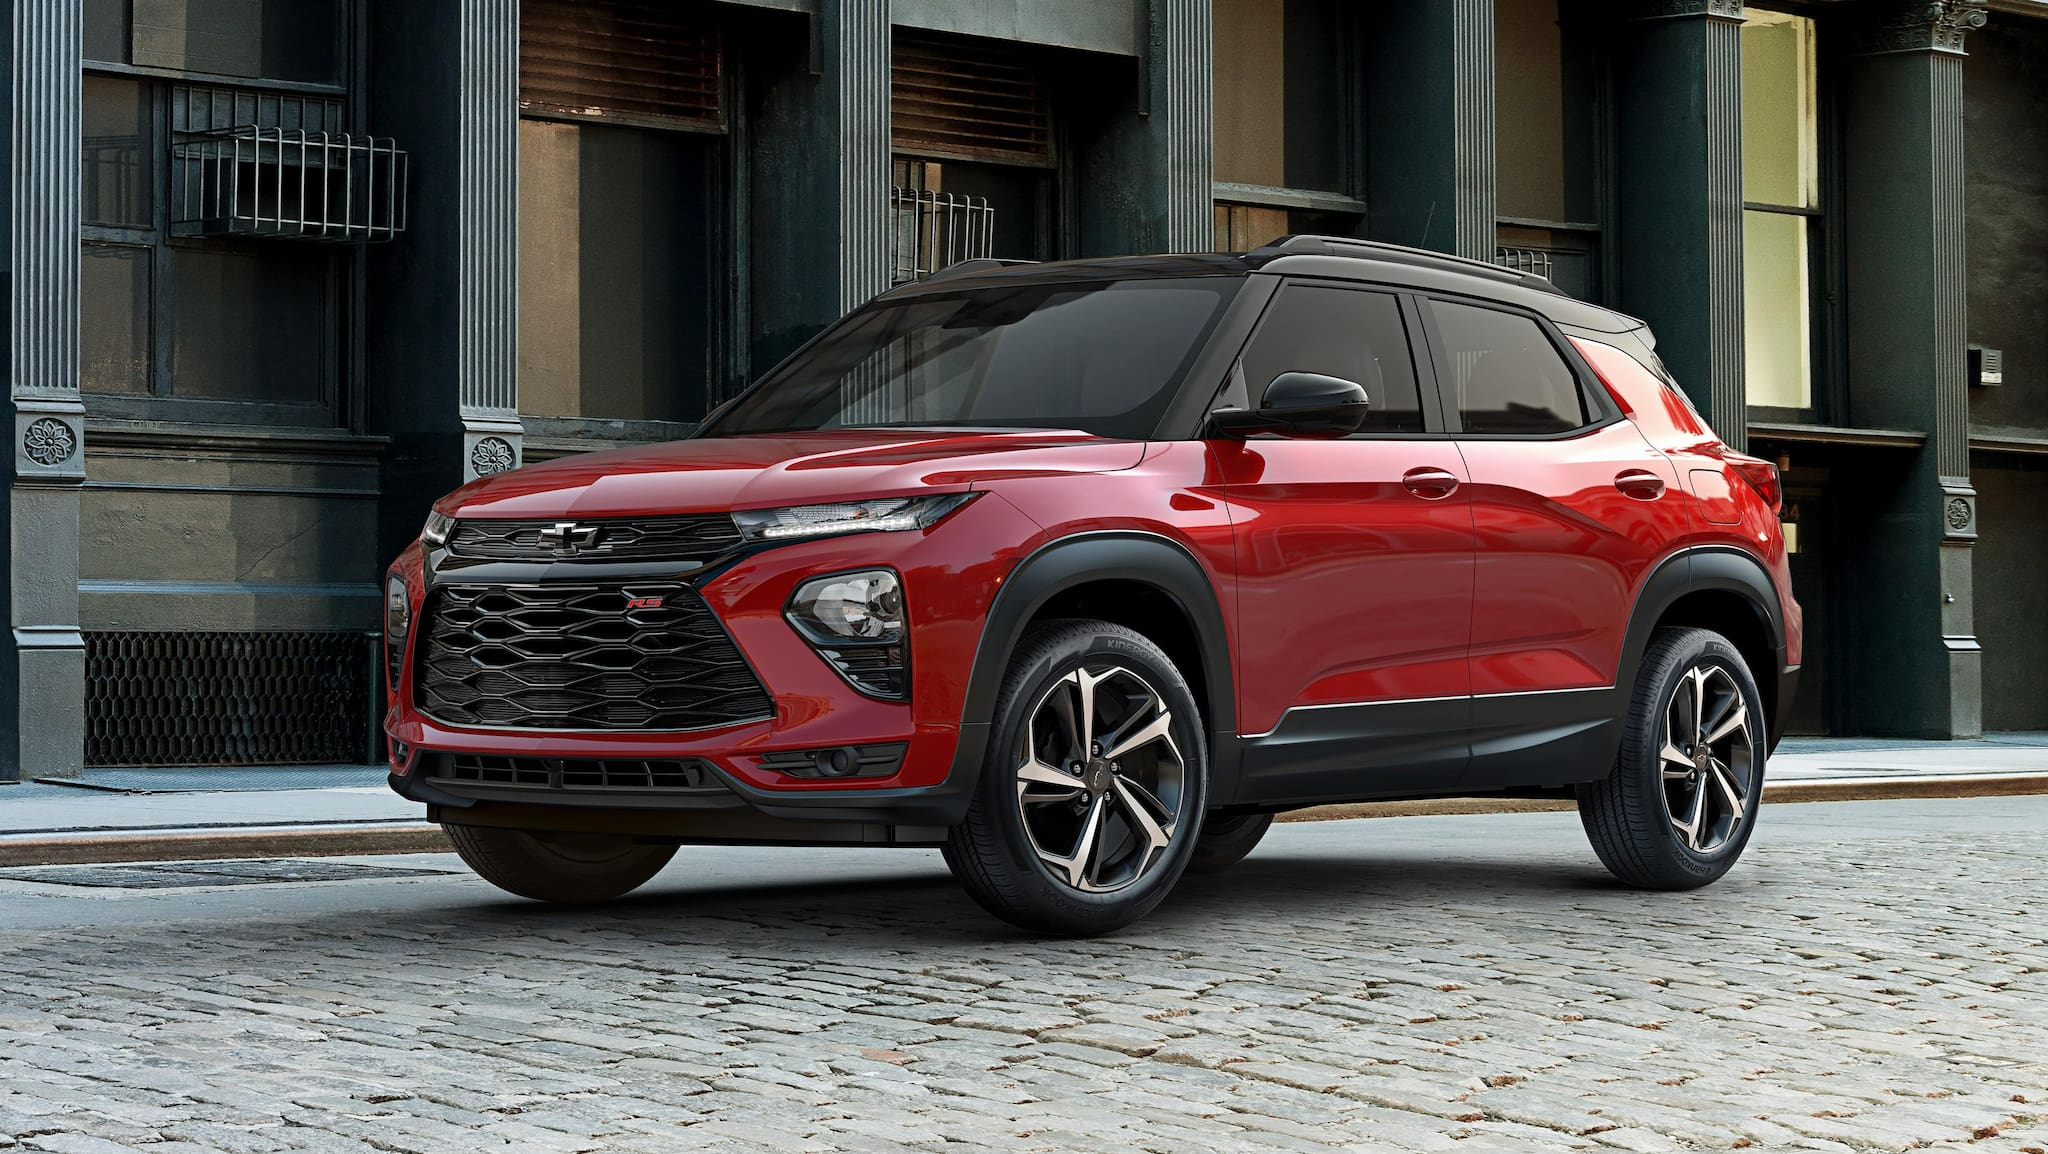 Could This Be the Next-Gen Chevrolet Trailblazer?